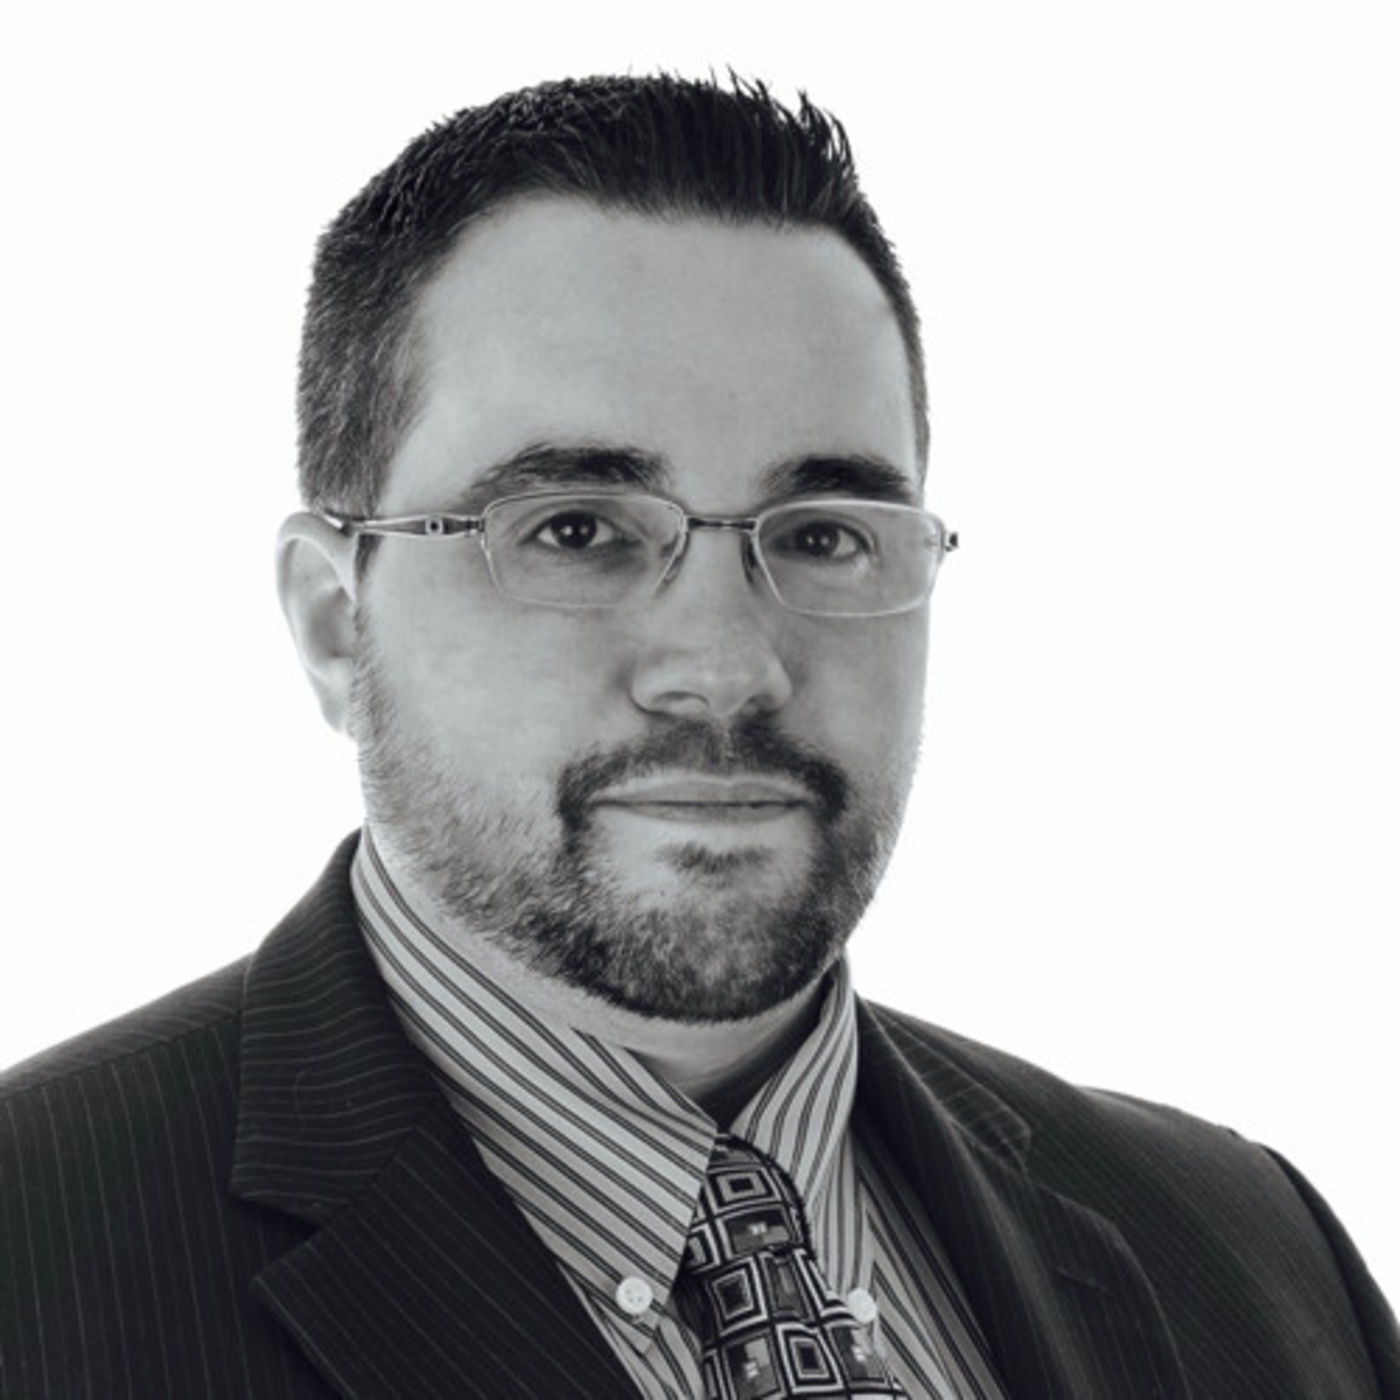 #11 - Robert Baldi, Director of Cyber Security Audit, Equifax - Audit as a Security Partner and Line of Defense